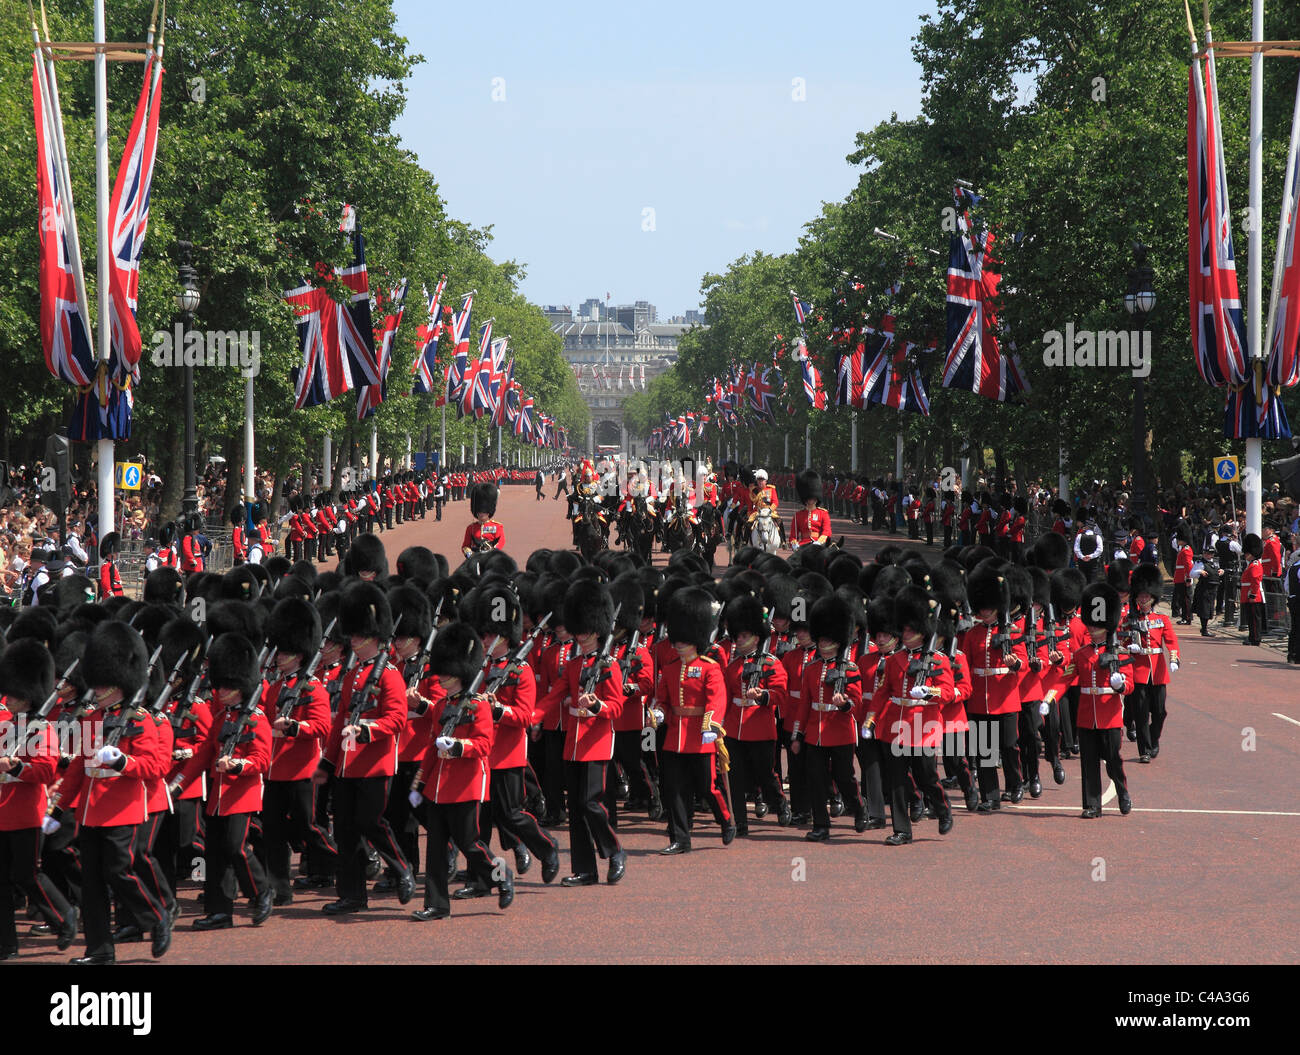 Procession in The Mall at Trooping of the Colour Ceremony with Grenadier guards in foreground. - Stock Image